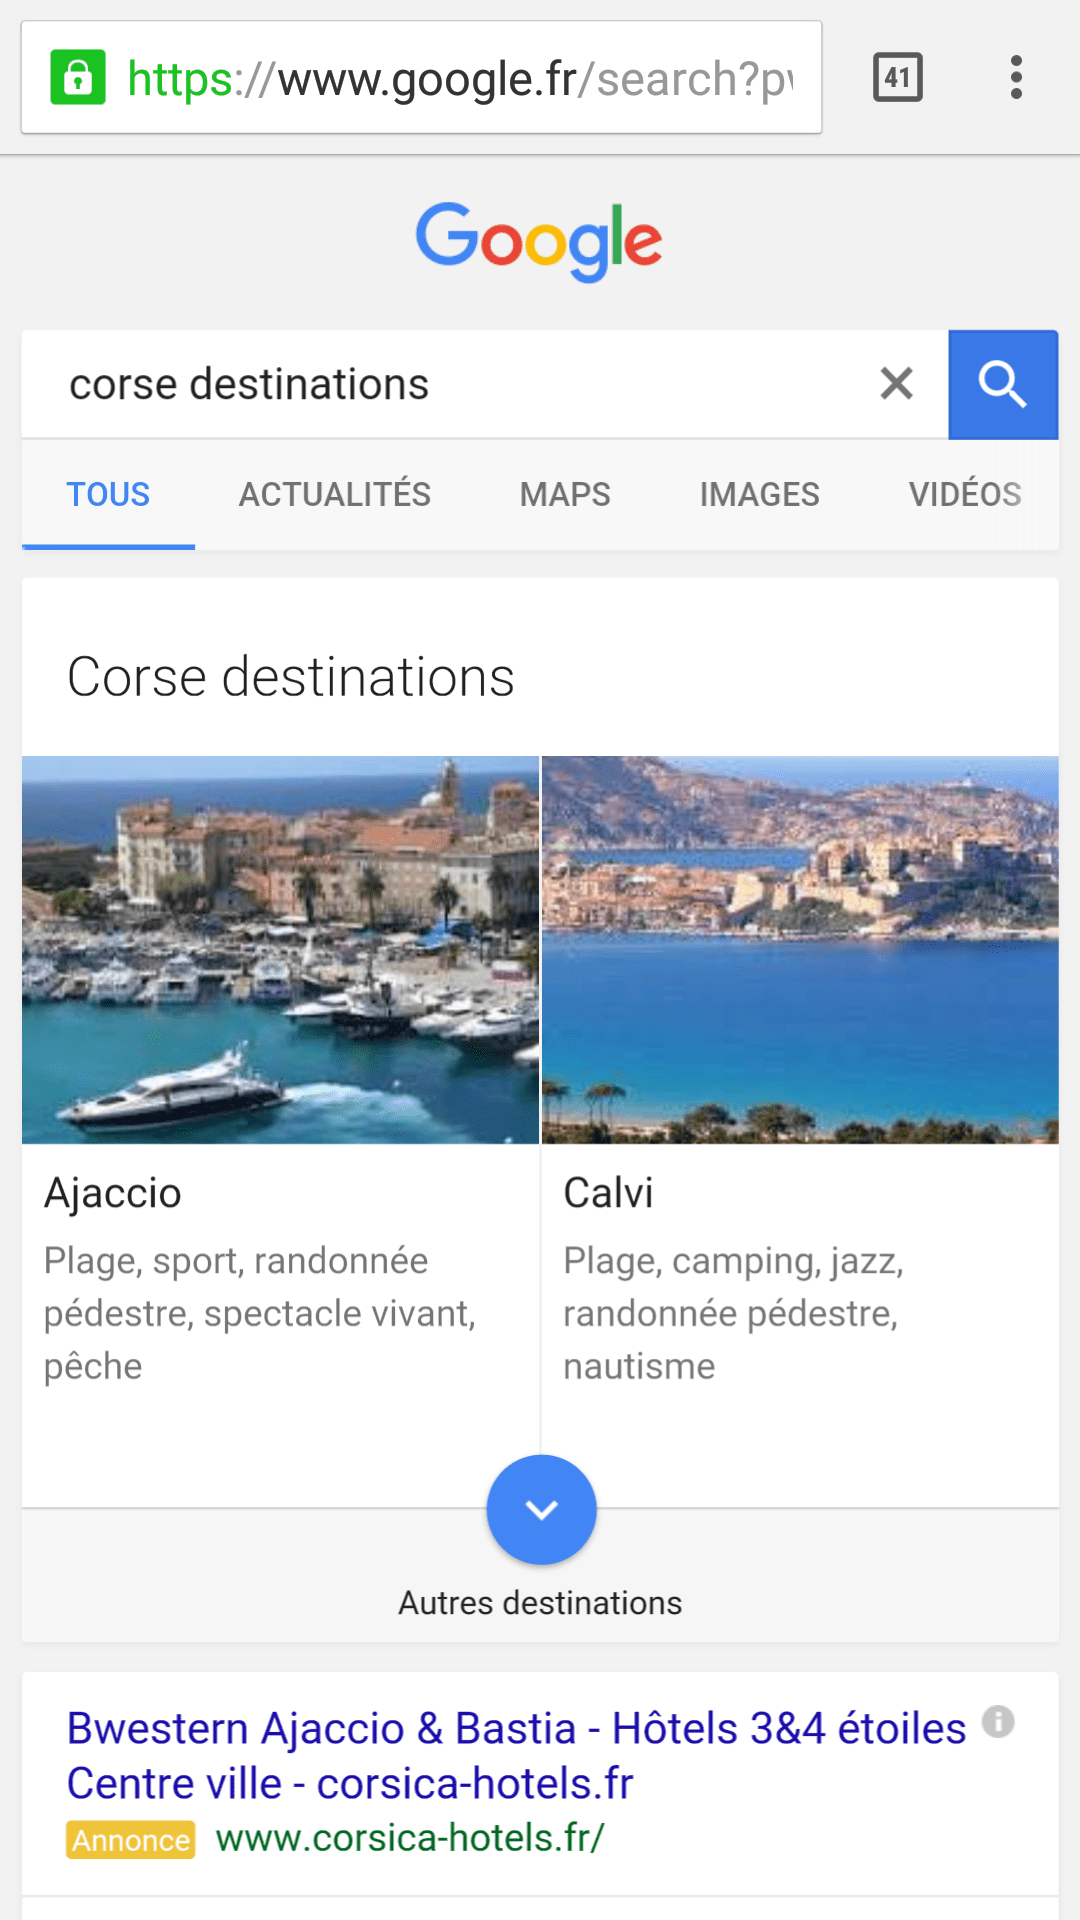 Corse destinations vacances